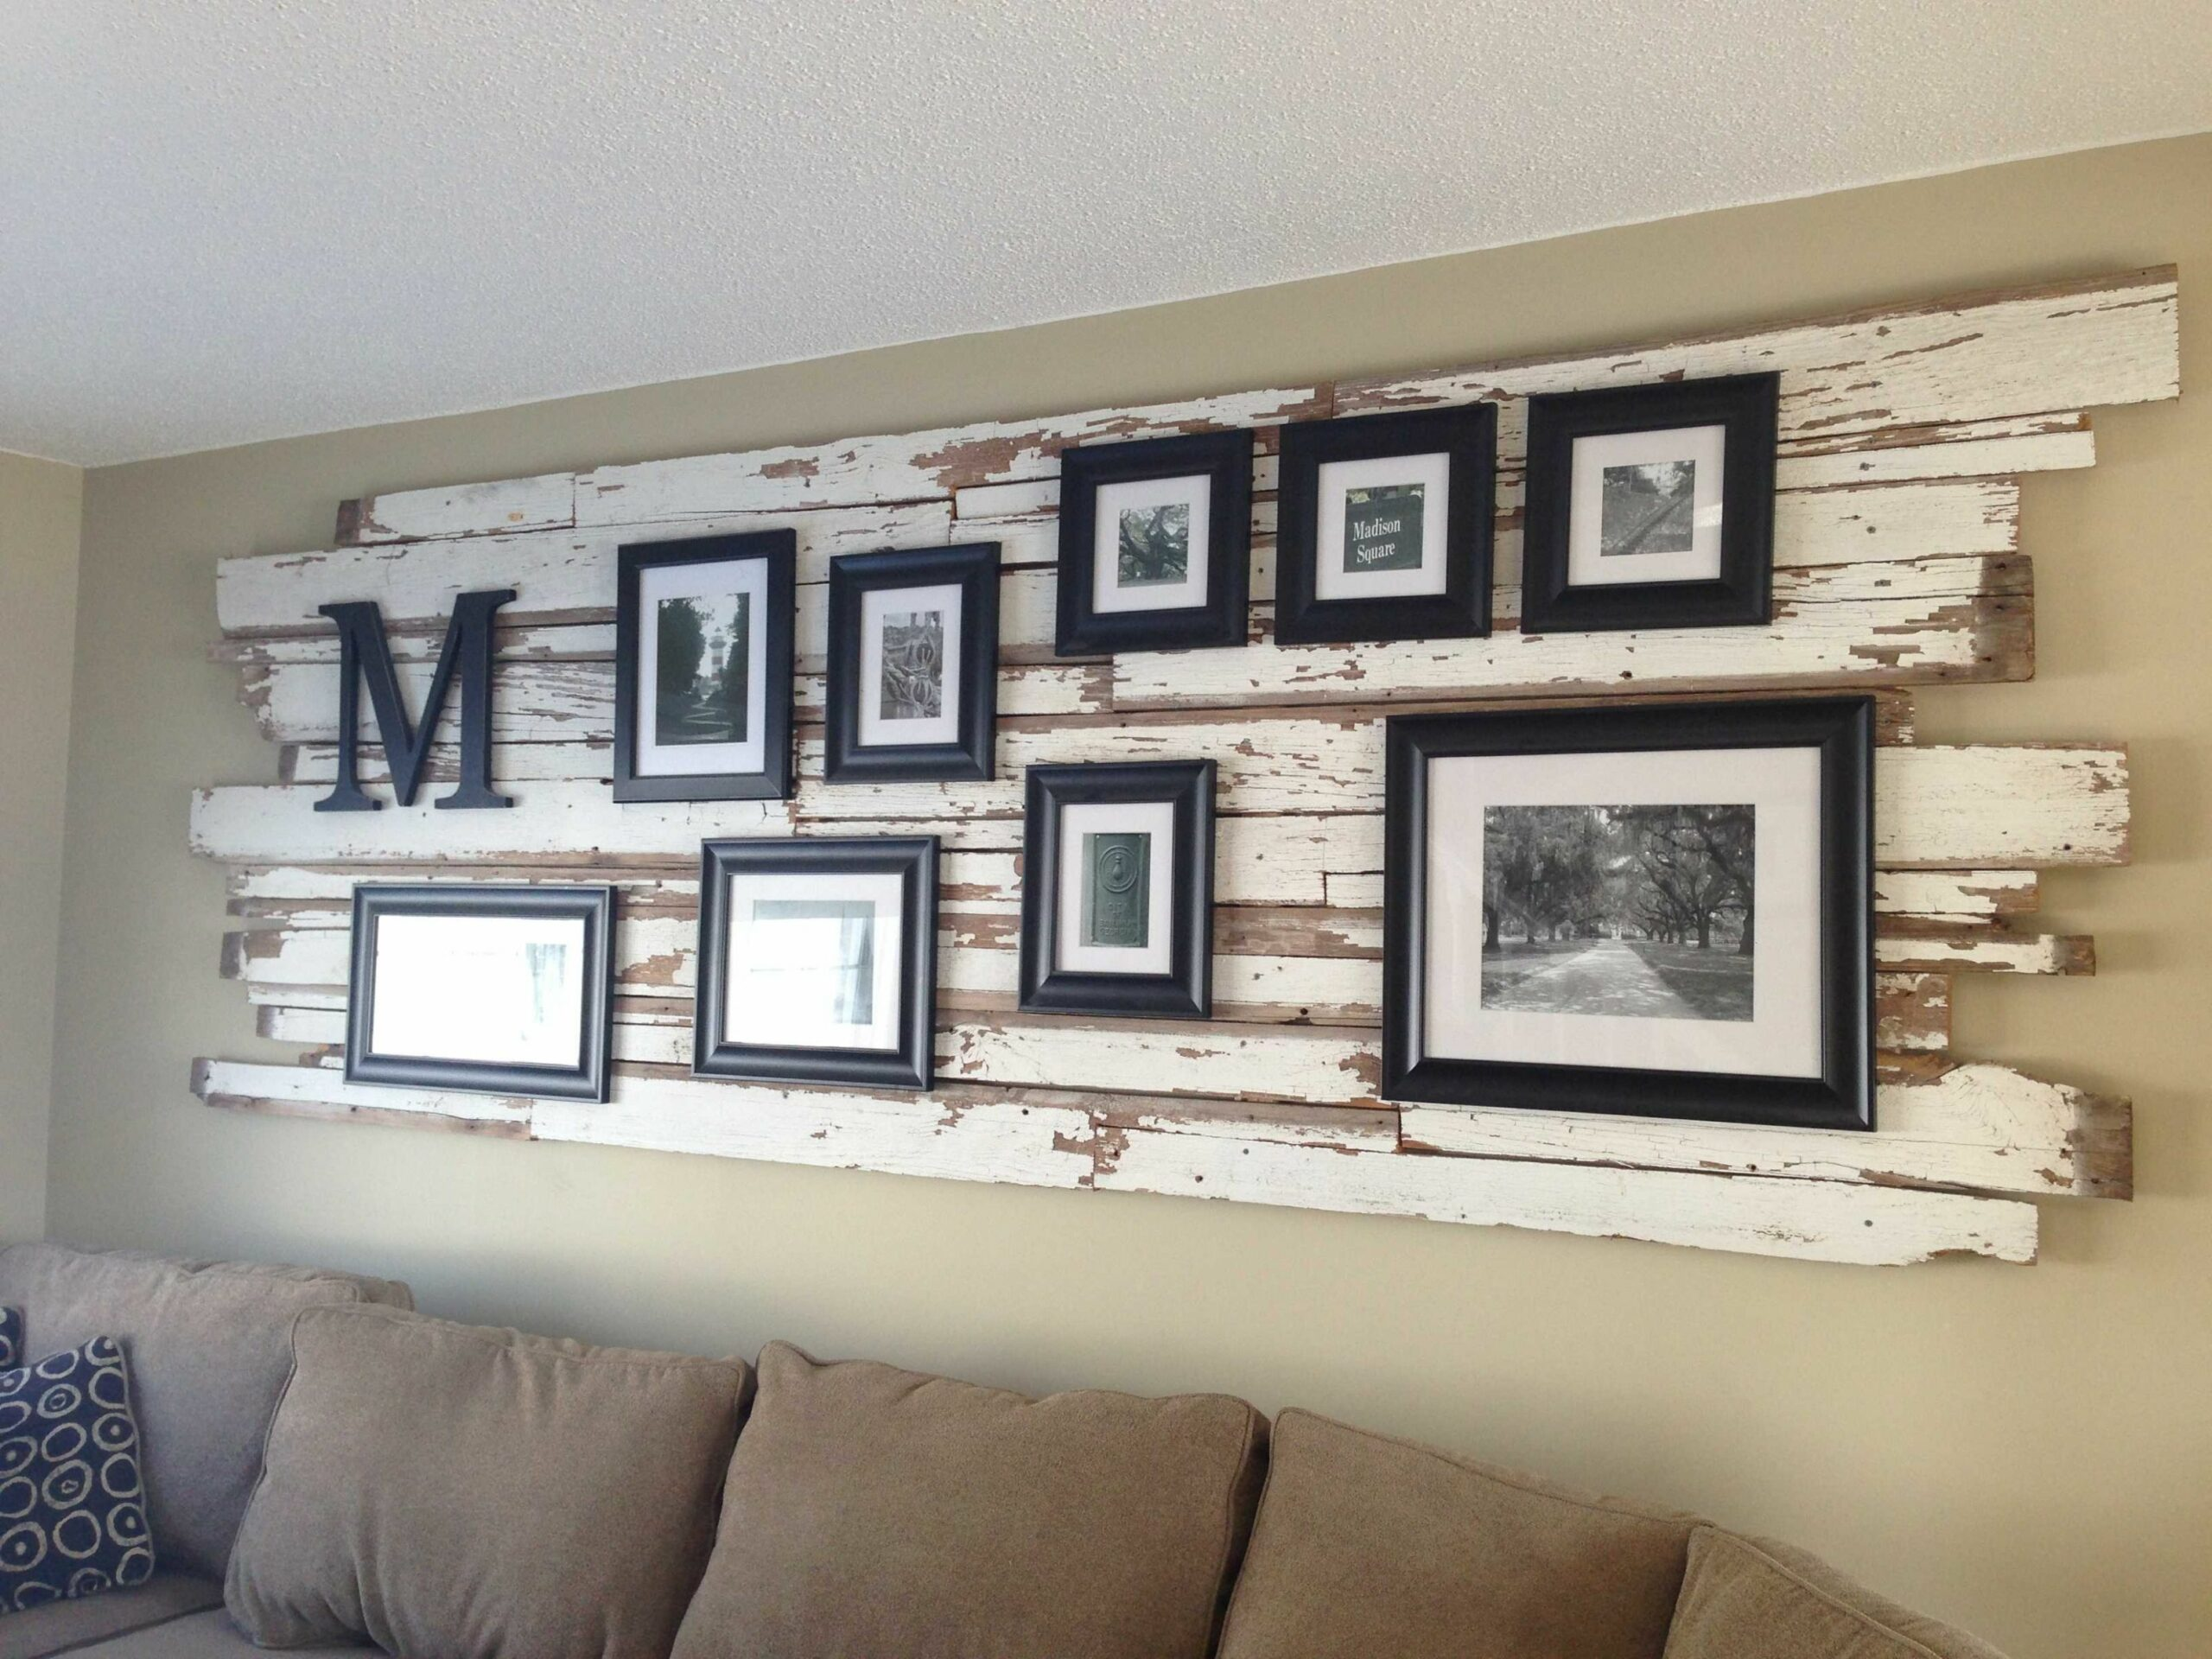 Wall Decor Ideas For Family Room Pictures With Awesome Restaurant ..